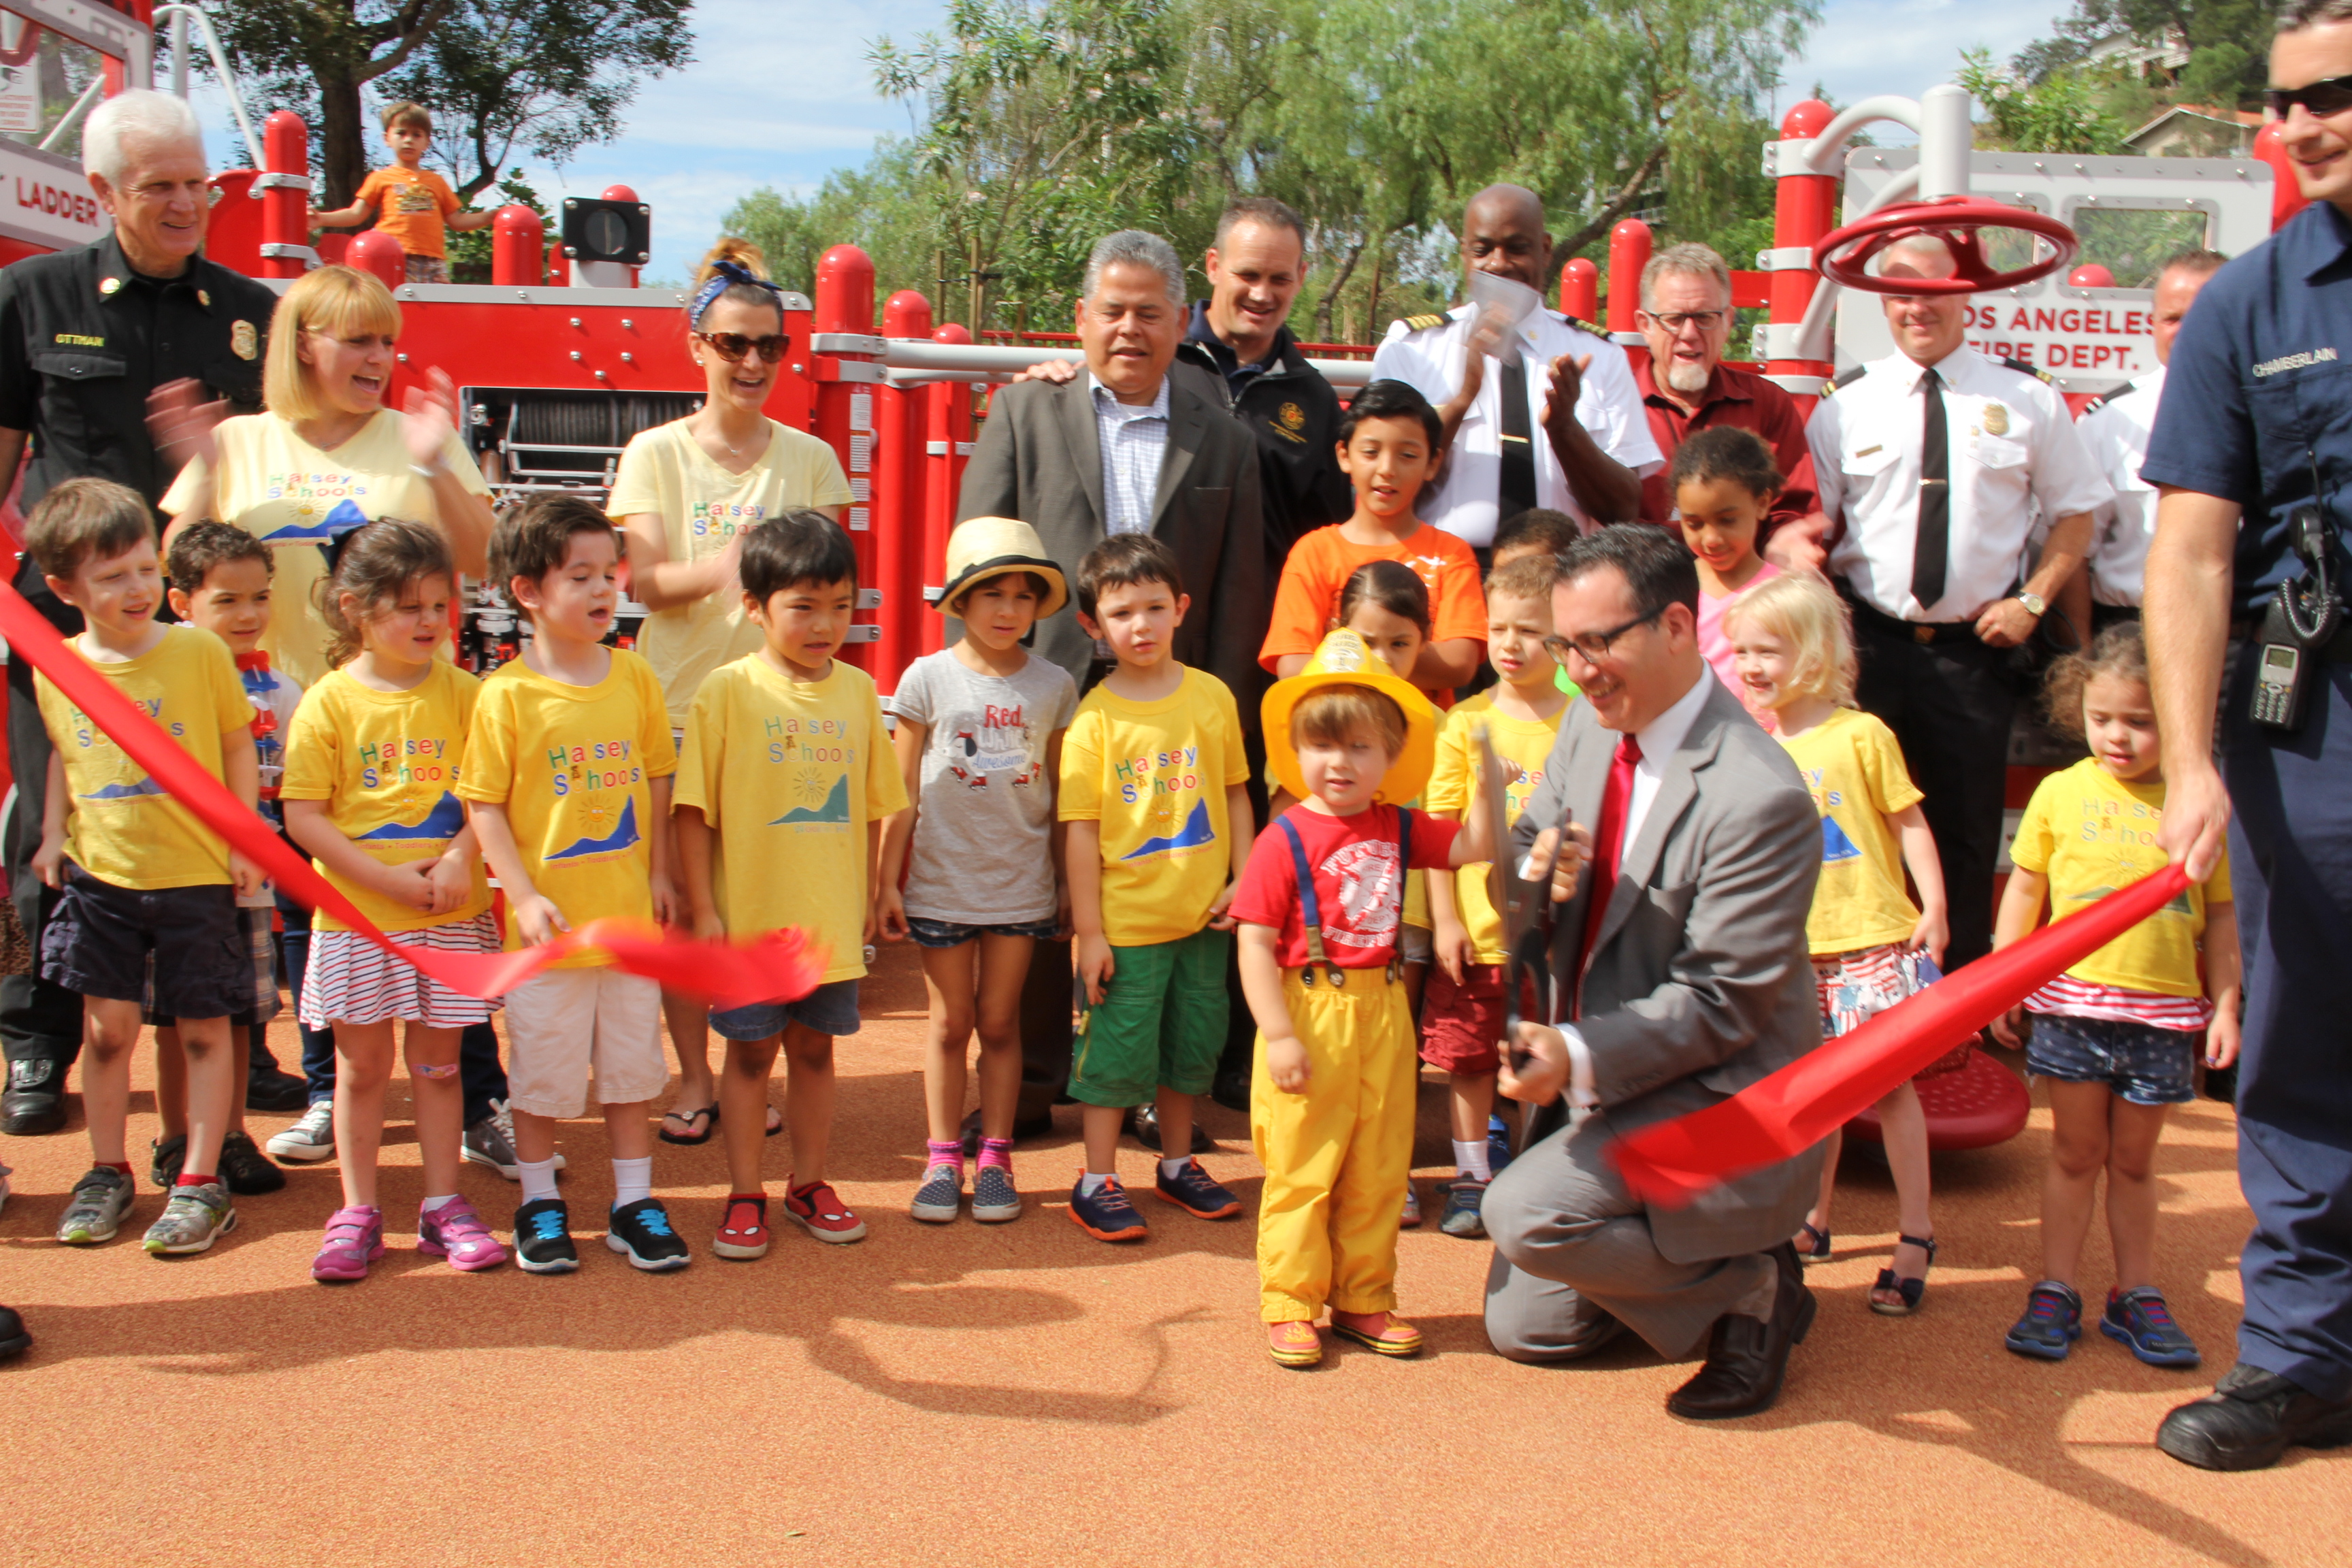 Blumenfield is joined by Recreation and Parks officials, LAFD Firefighters and dozens of neighbors and local kids to cut the ribbon on the new Costanso Fire Station 84 Park, on July 2, 2015.